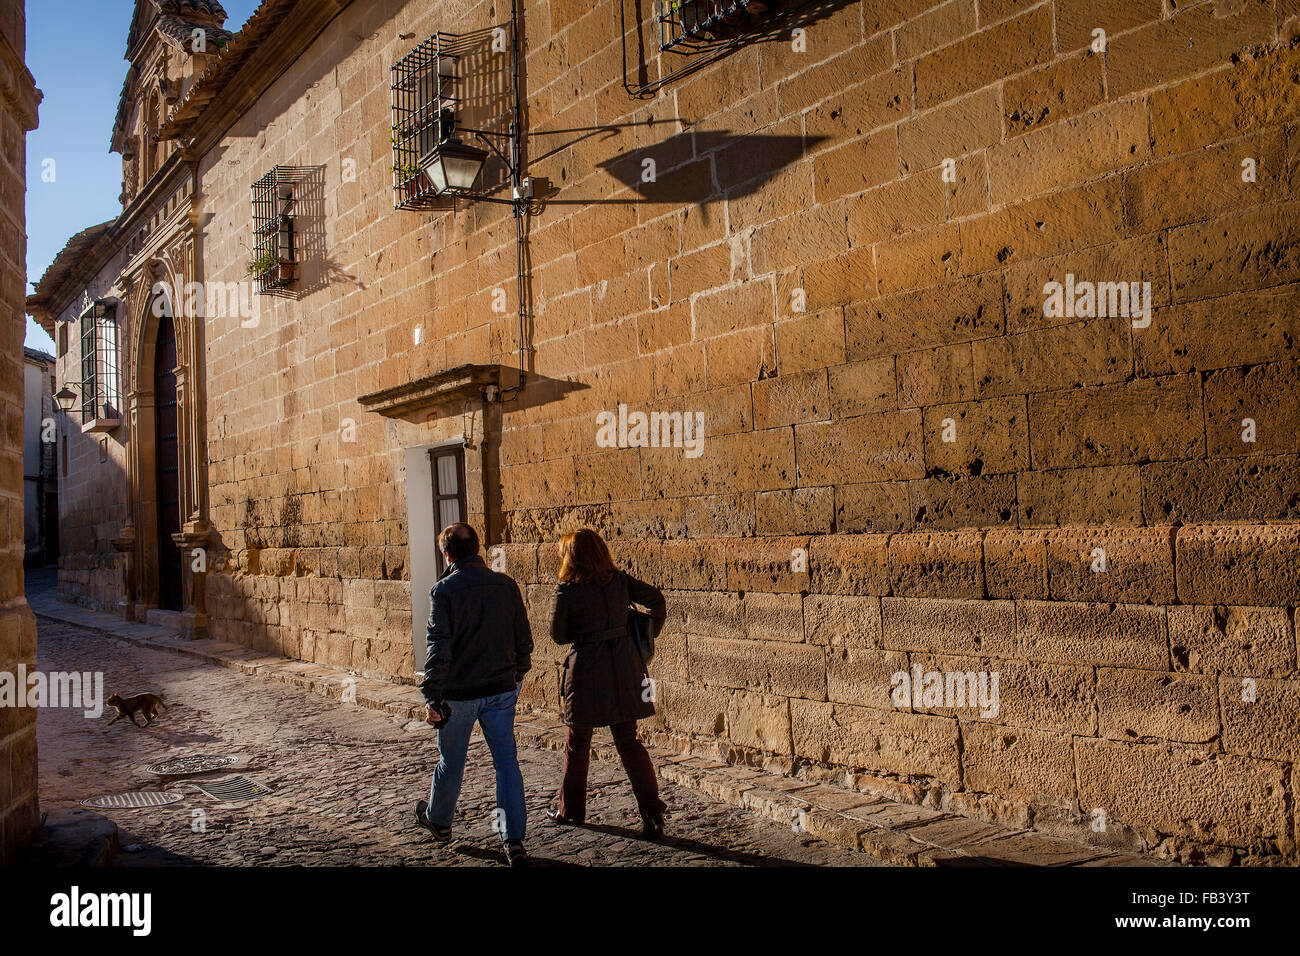 Calle de Alvaro de Torres.Wall of Santa Clara convent. Úbeda. Jaén province. Spain Stock Photo